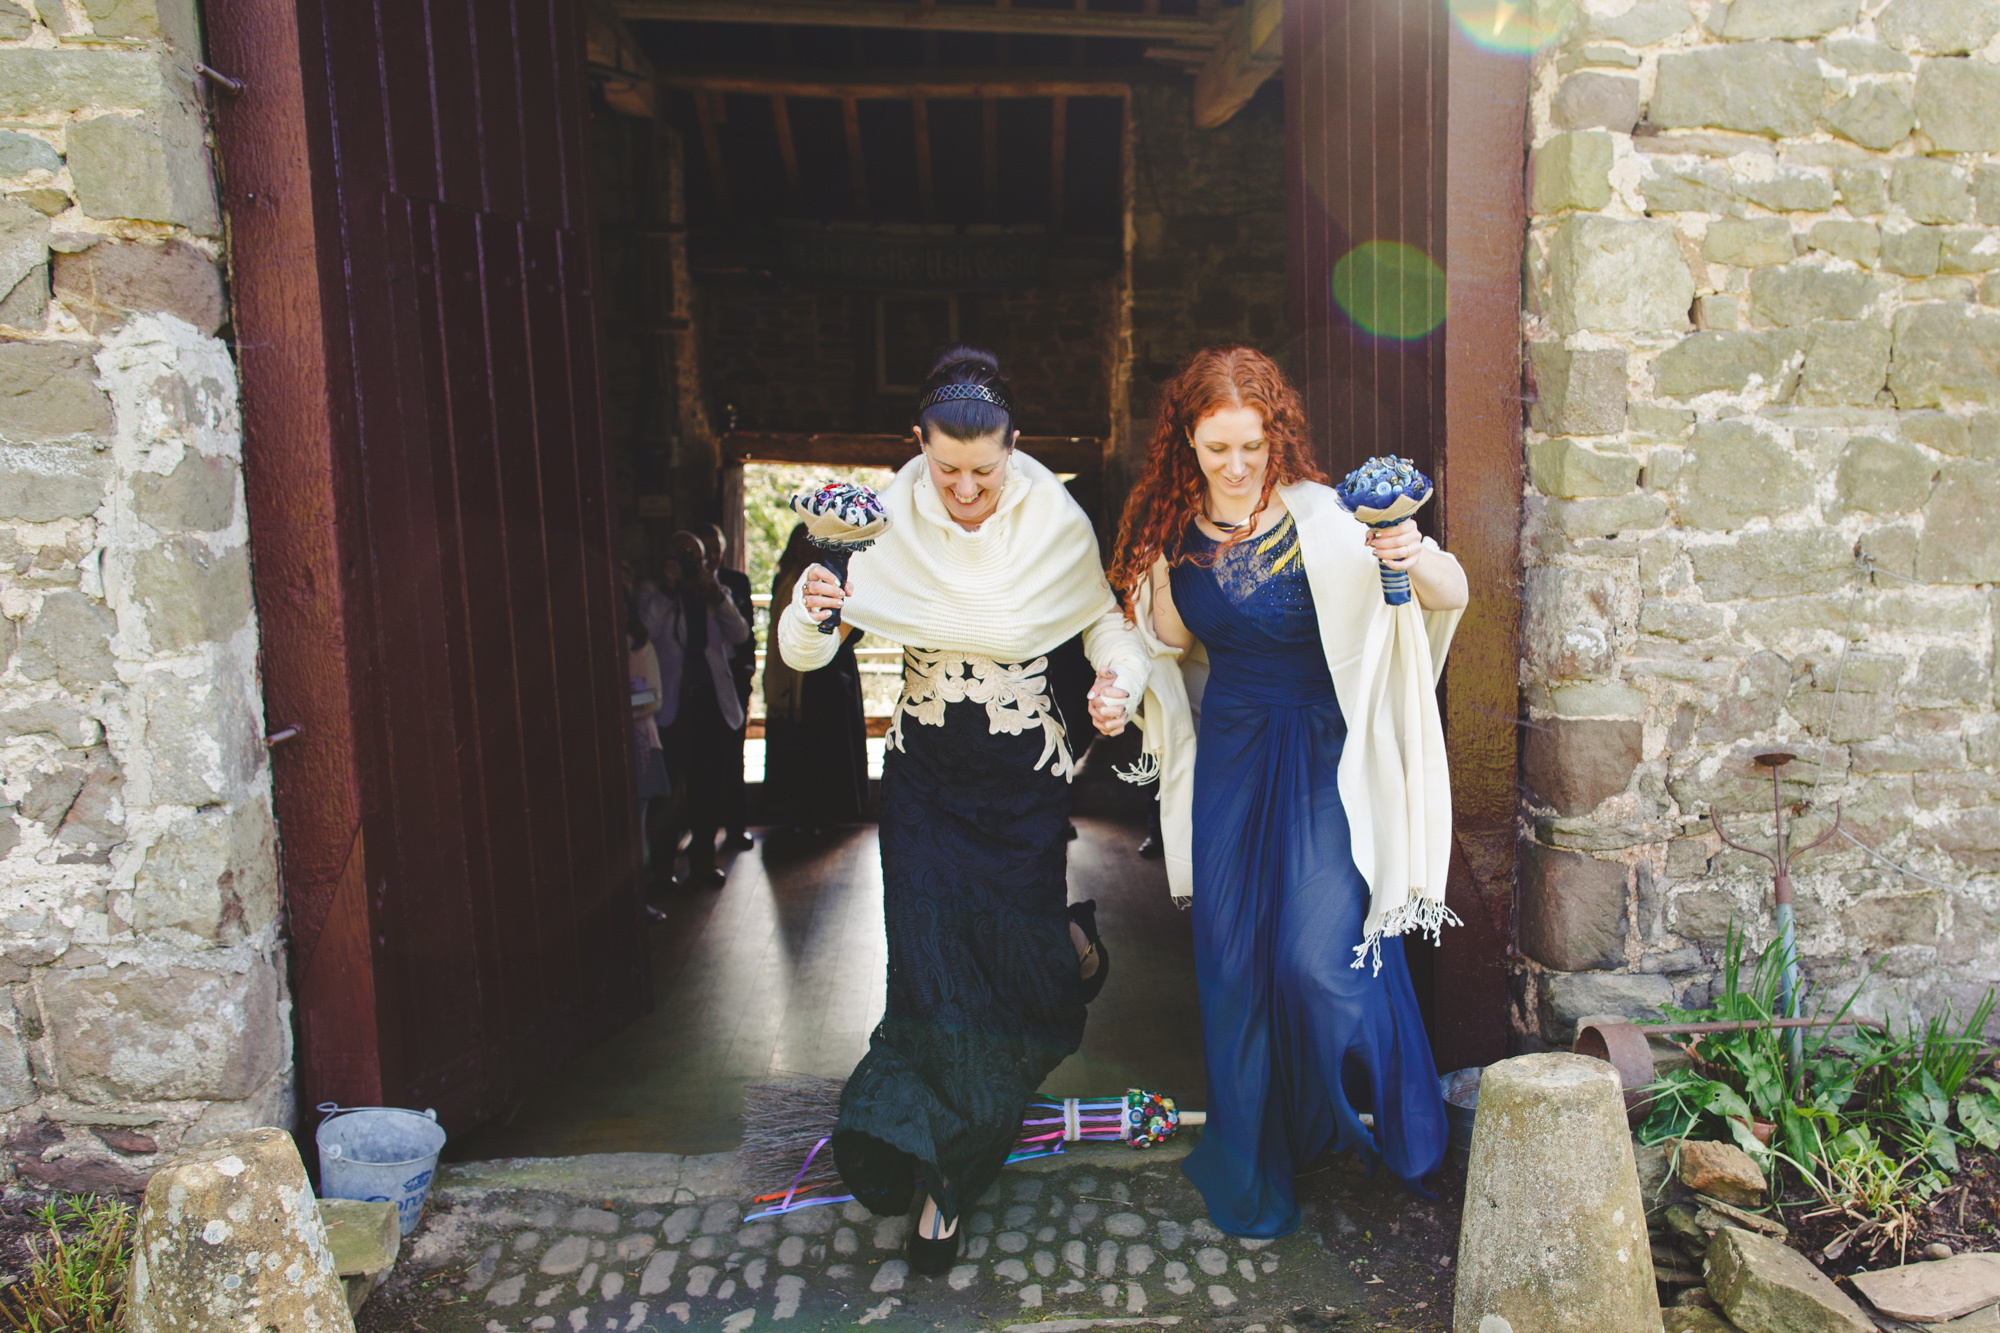 usk-castle-alternative-wedding-photographer-uk-camera-hannah-6.jpg